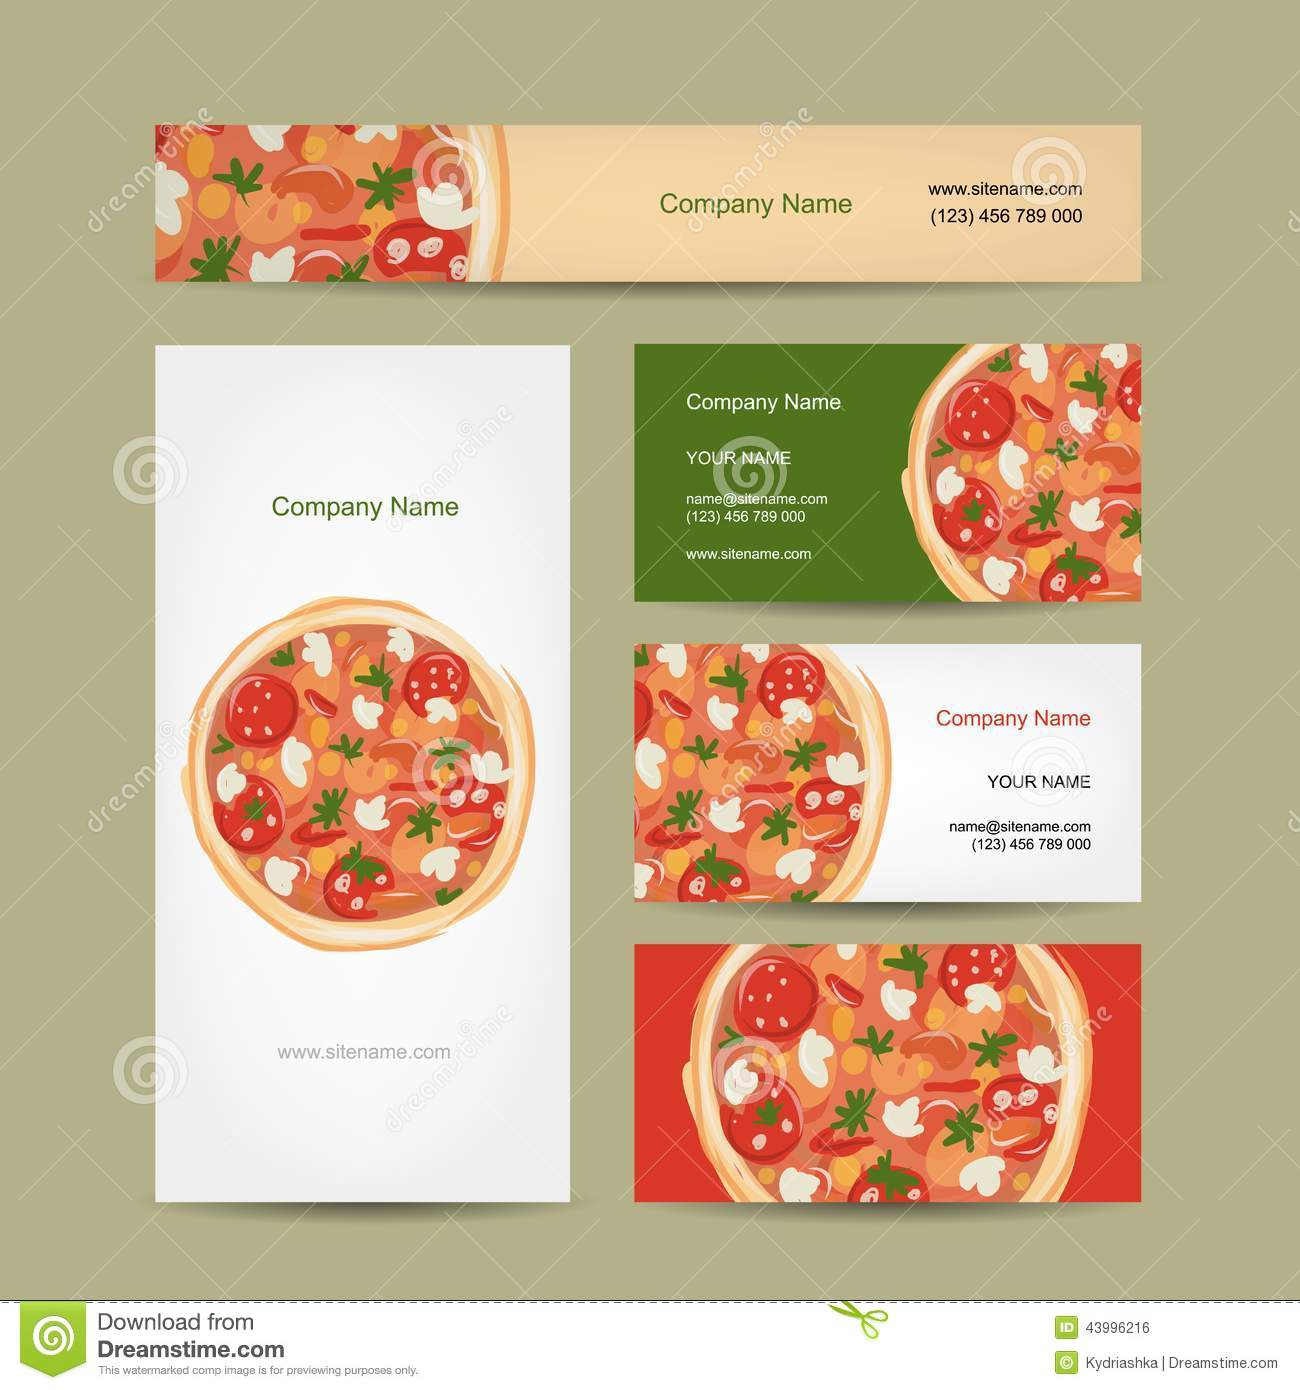 Set Of Business Cards Design With Pizza Stock Vector - Illustration ...